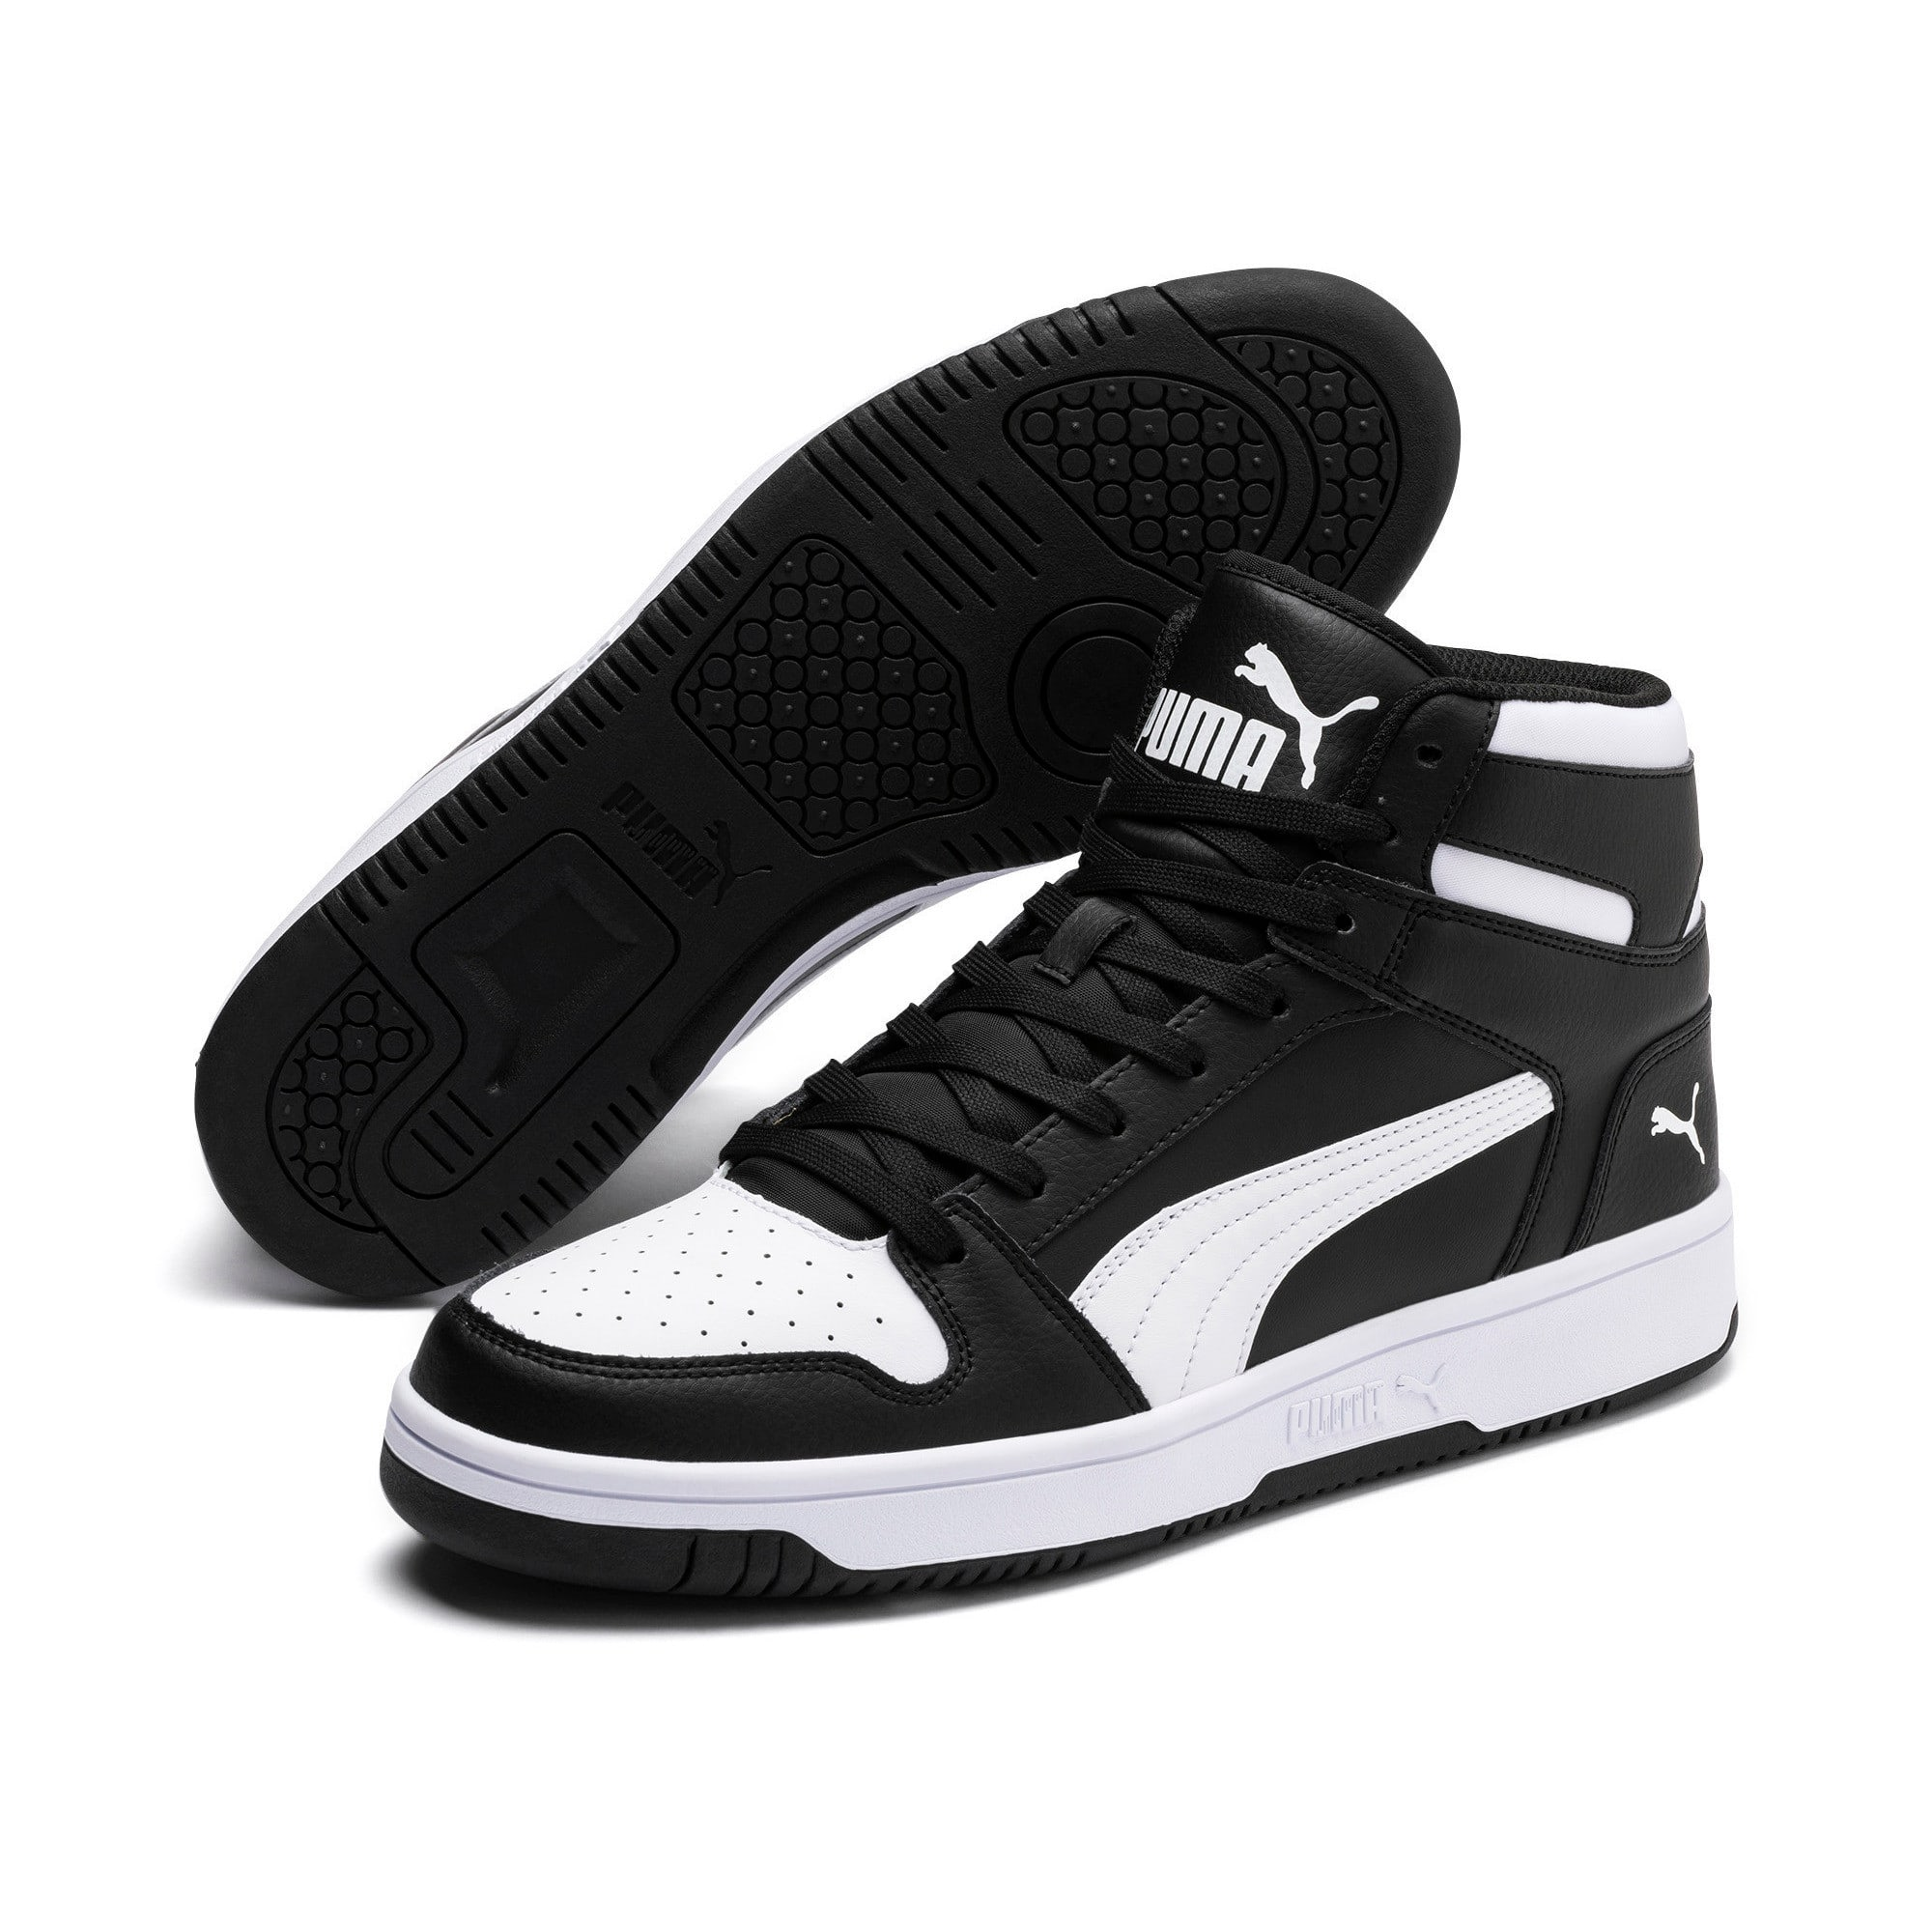 Thumbnail 2 of PUMA Rebound LayUp Sneakers, Puma Black-Puma White, medium